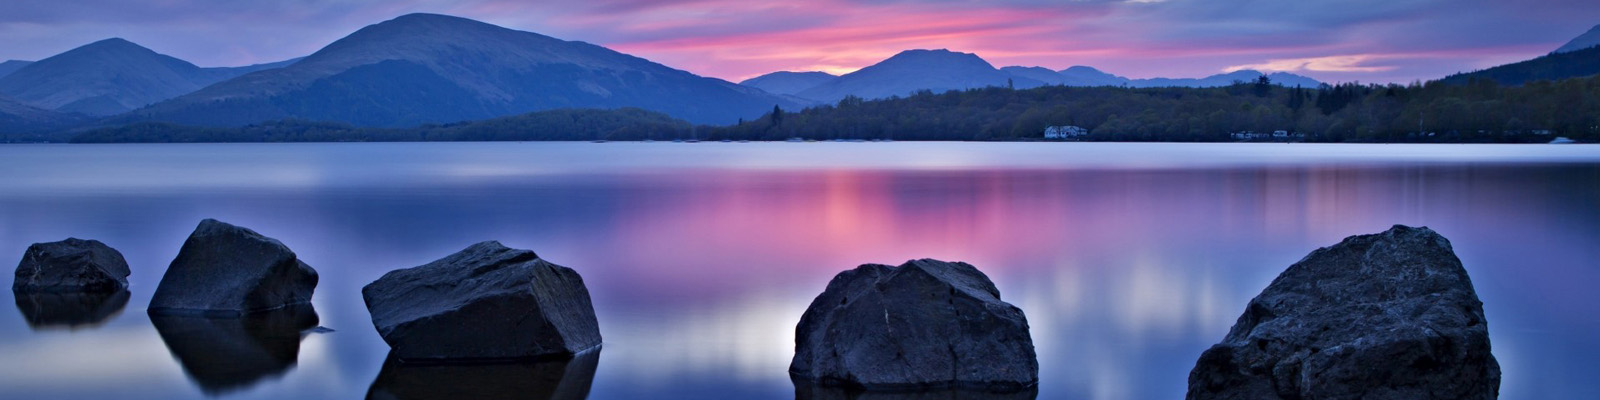 Explore Loch Lomond & The Trossachs